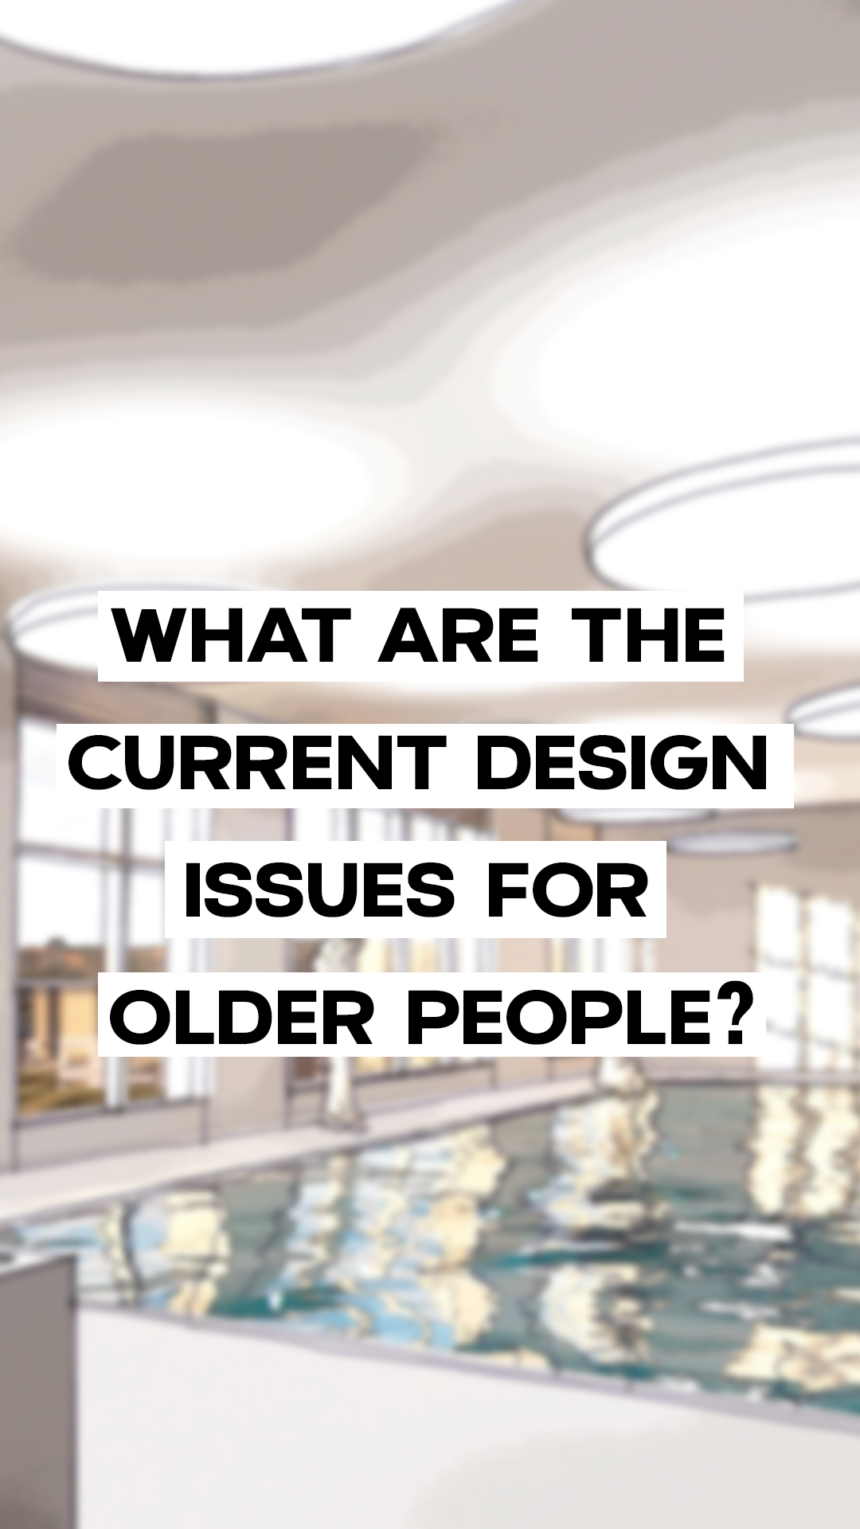 Ageing Unlocked - What are the current design issues for older people?